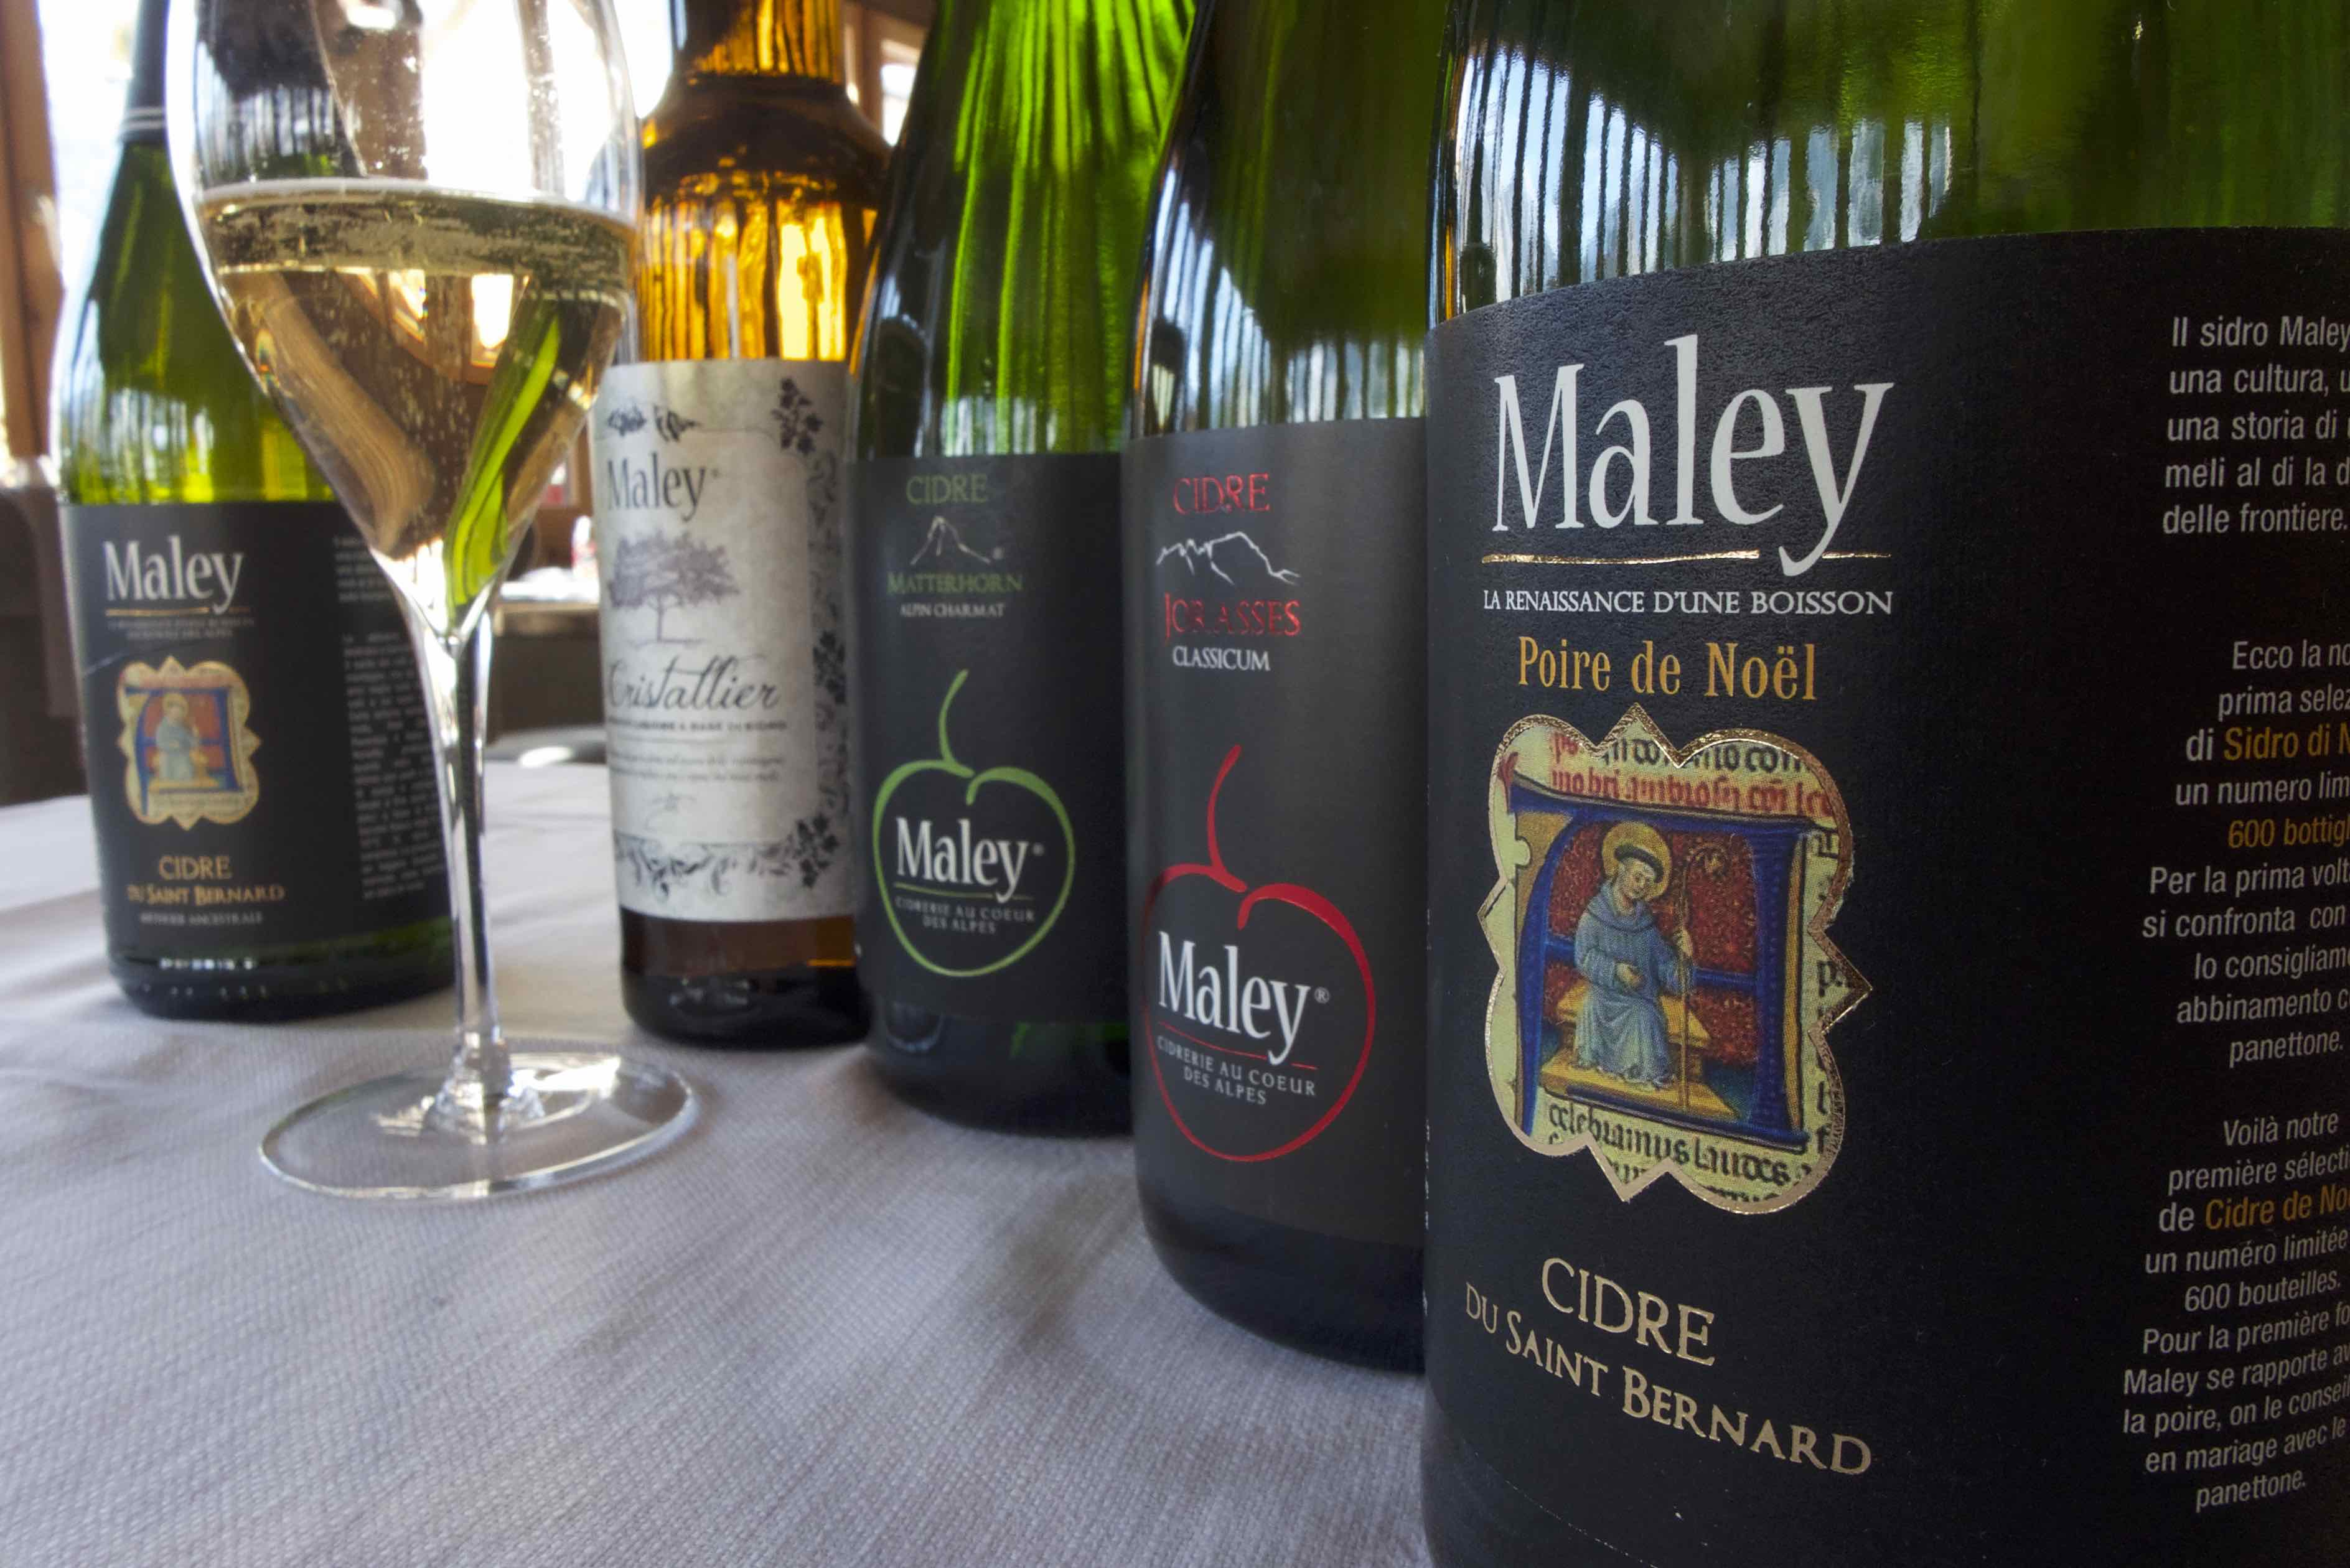 Maley Products